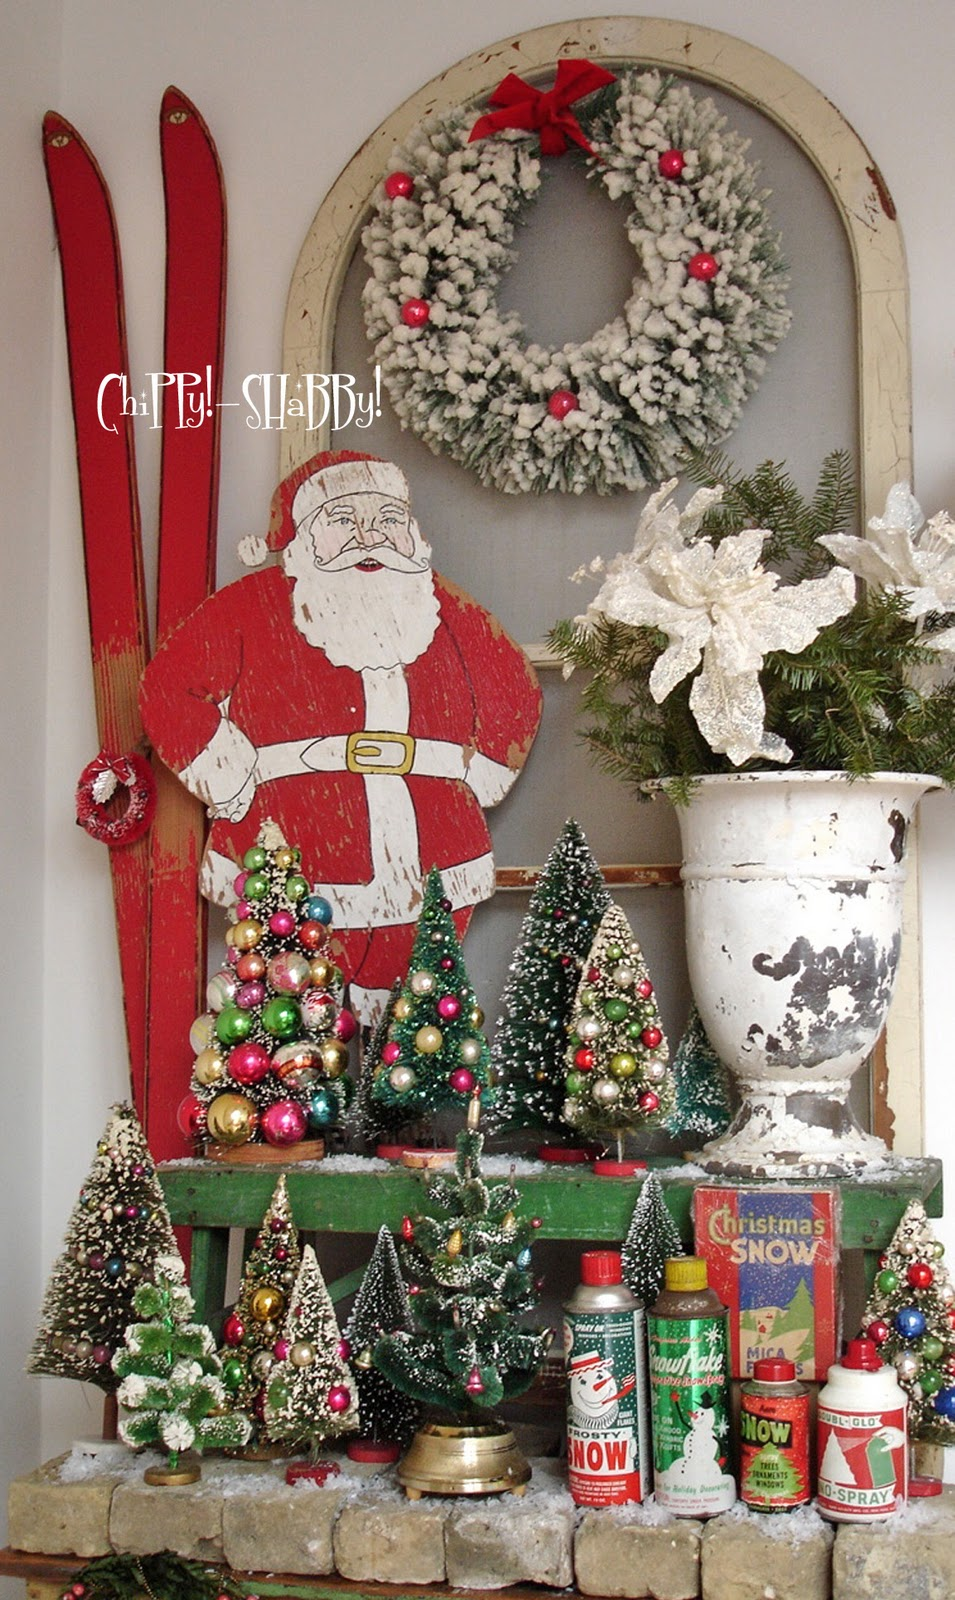 Chippy shabby chippy shabby vintage christmas for Holiday decorating ideas pictures